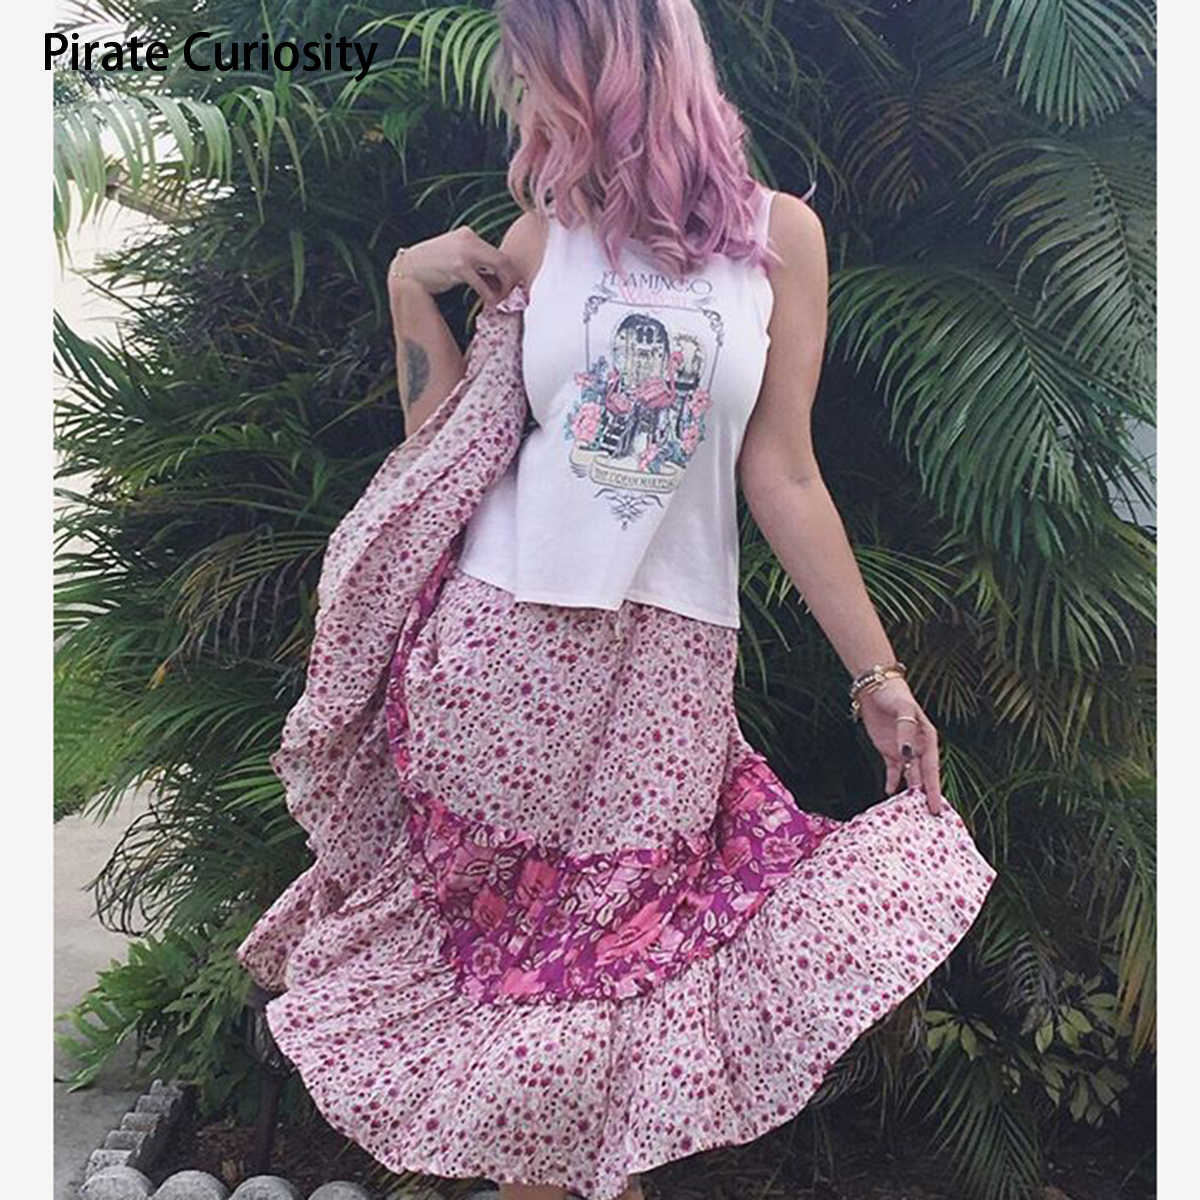 33a962102f54 Pirate Curiosity Rayon Winona Colorful Print Floral Skirts For Women Summer Midi  Skirt Vintage Bohemian Beach